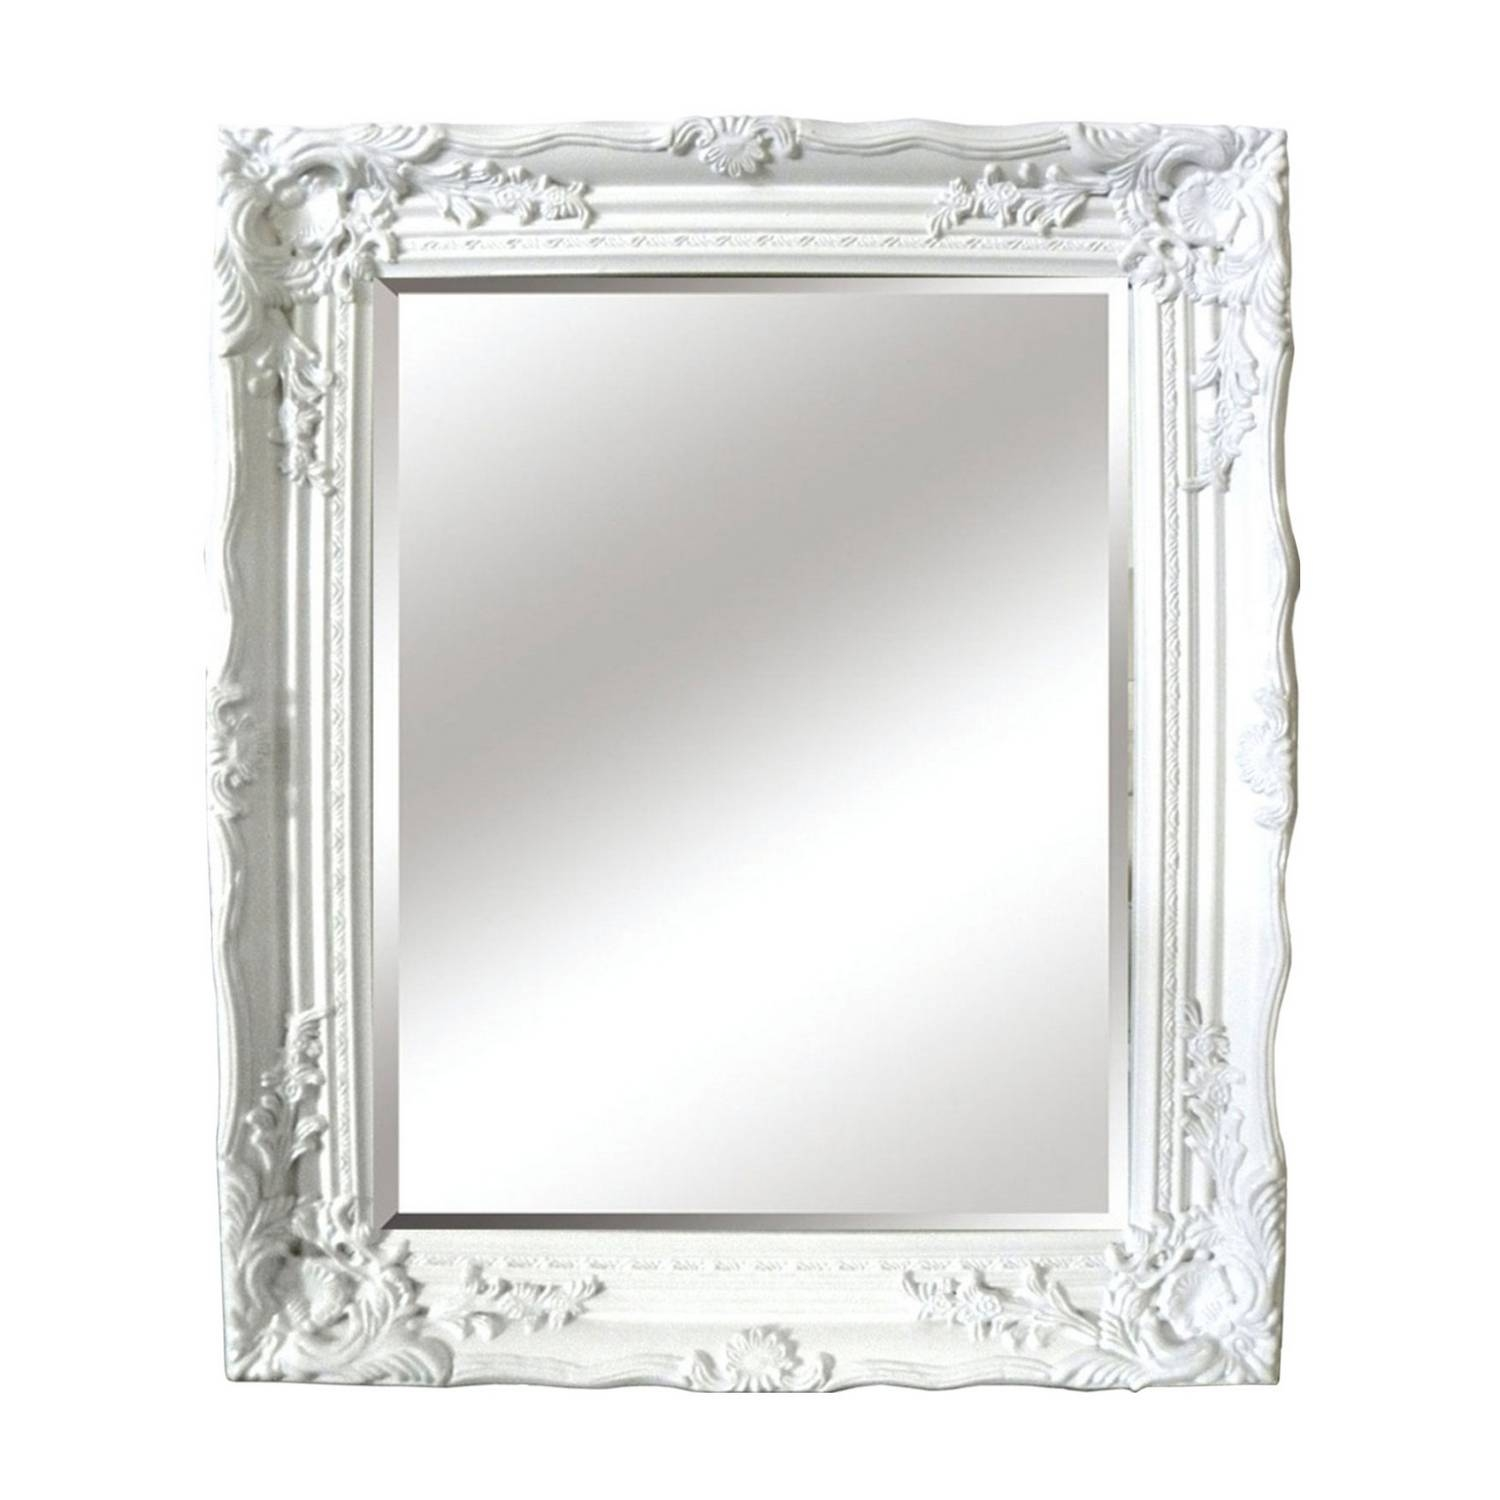 Buy Antique White Ornate Mirror Mirrors The Range Home Within White Antique Mirror (Image 4 of 15)